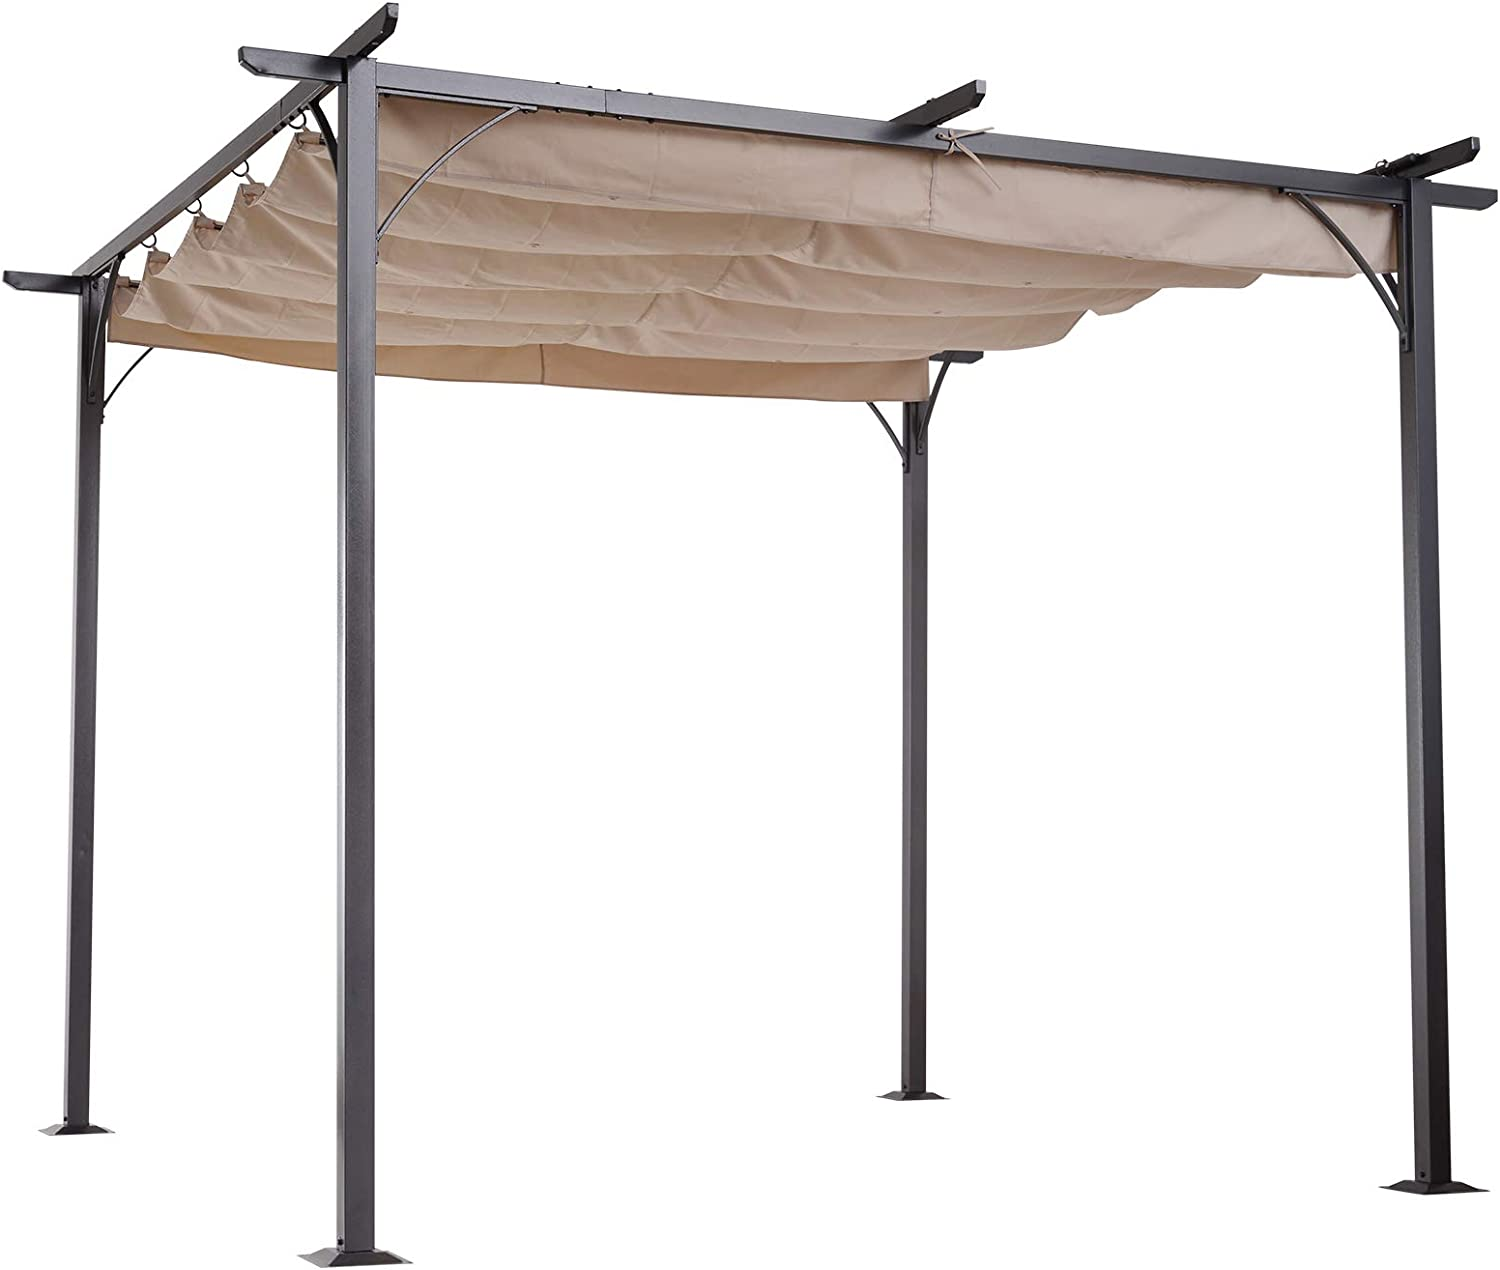 Outsunny 20' x 20' Retractable Patio Gazebo Pergola with UV Resistant  Outdoor Canopy & Strong Steel Frame